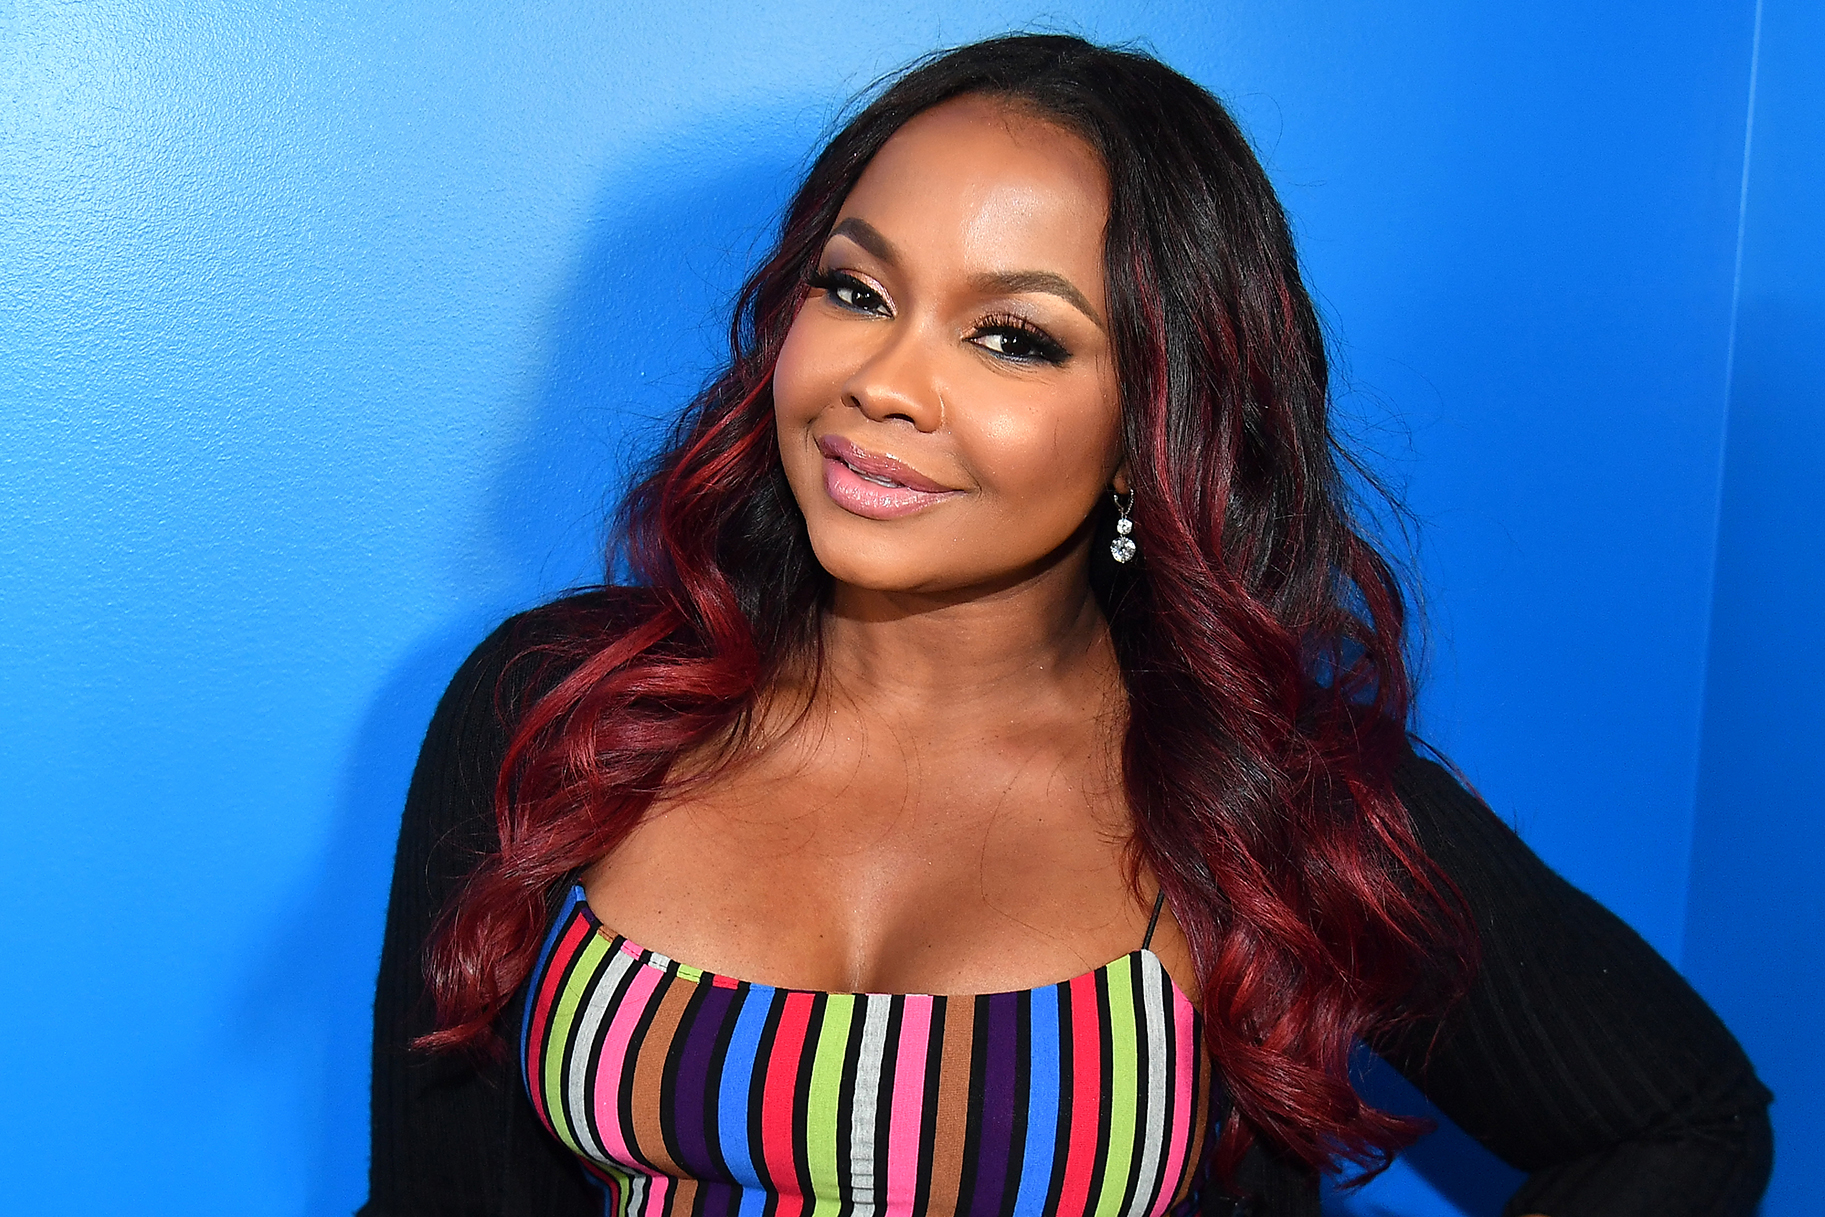 Phaedra Parks Talks About Empowering Others And Creating Opportunities.